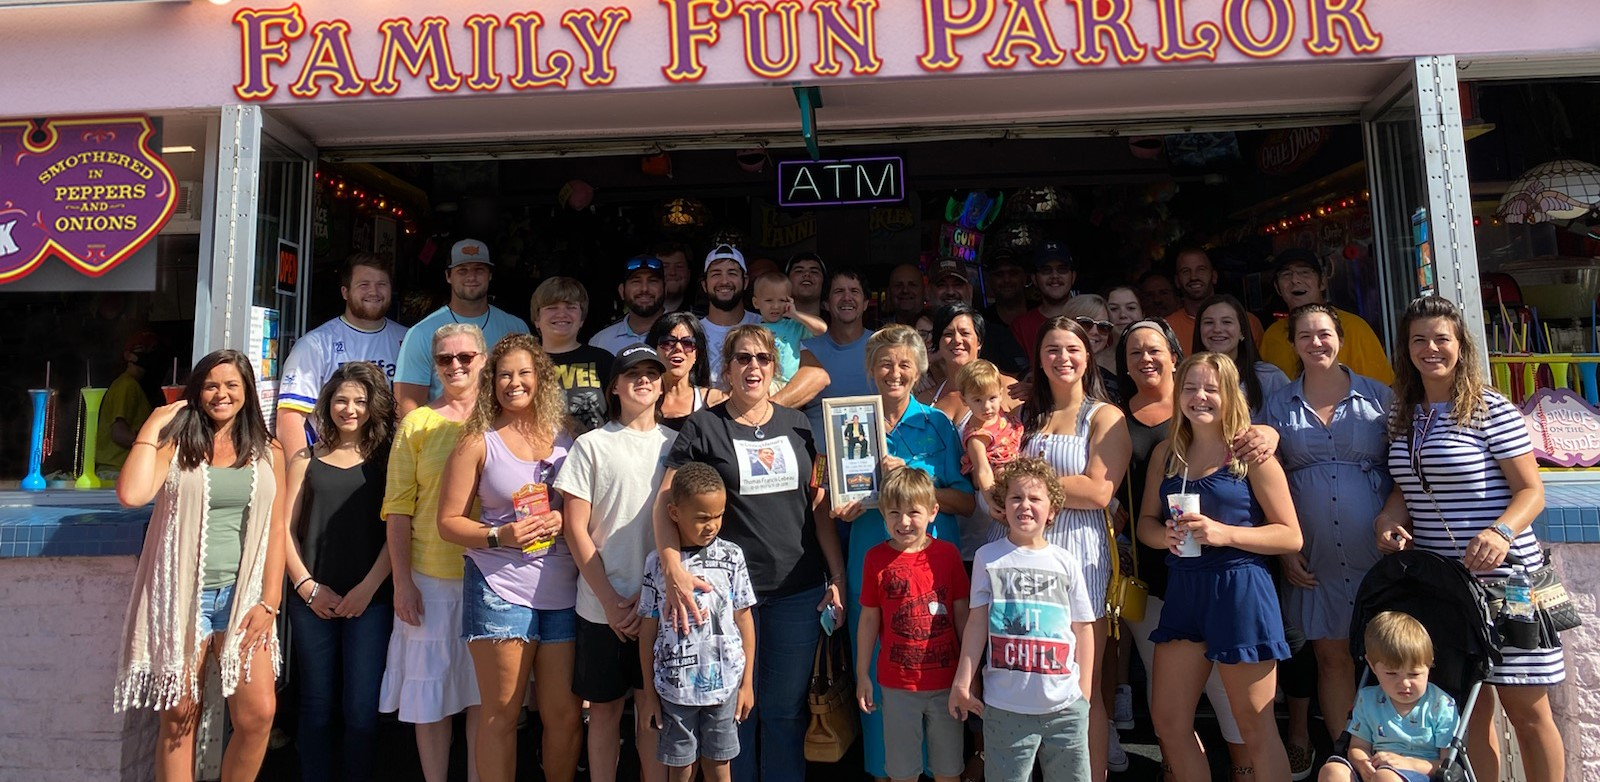 Fannie Farkle's celebrates 40 years with special visit